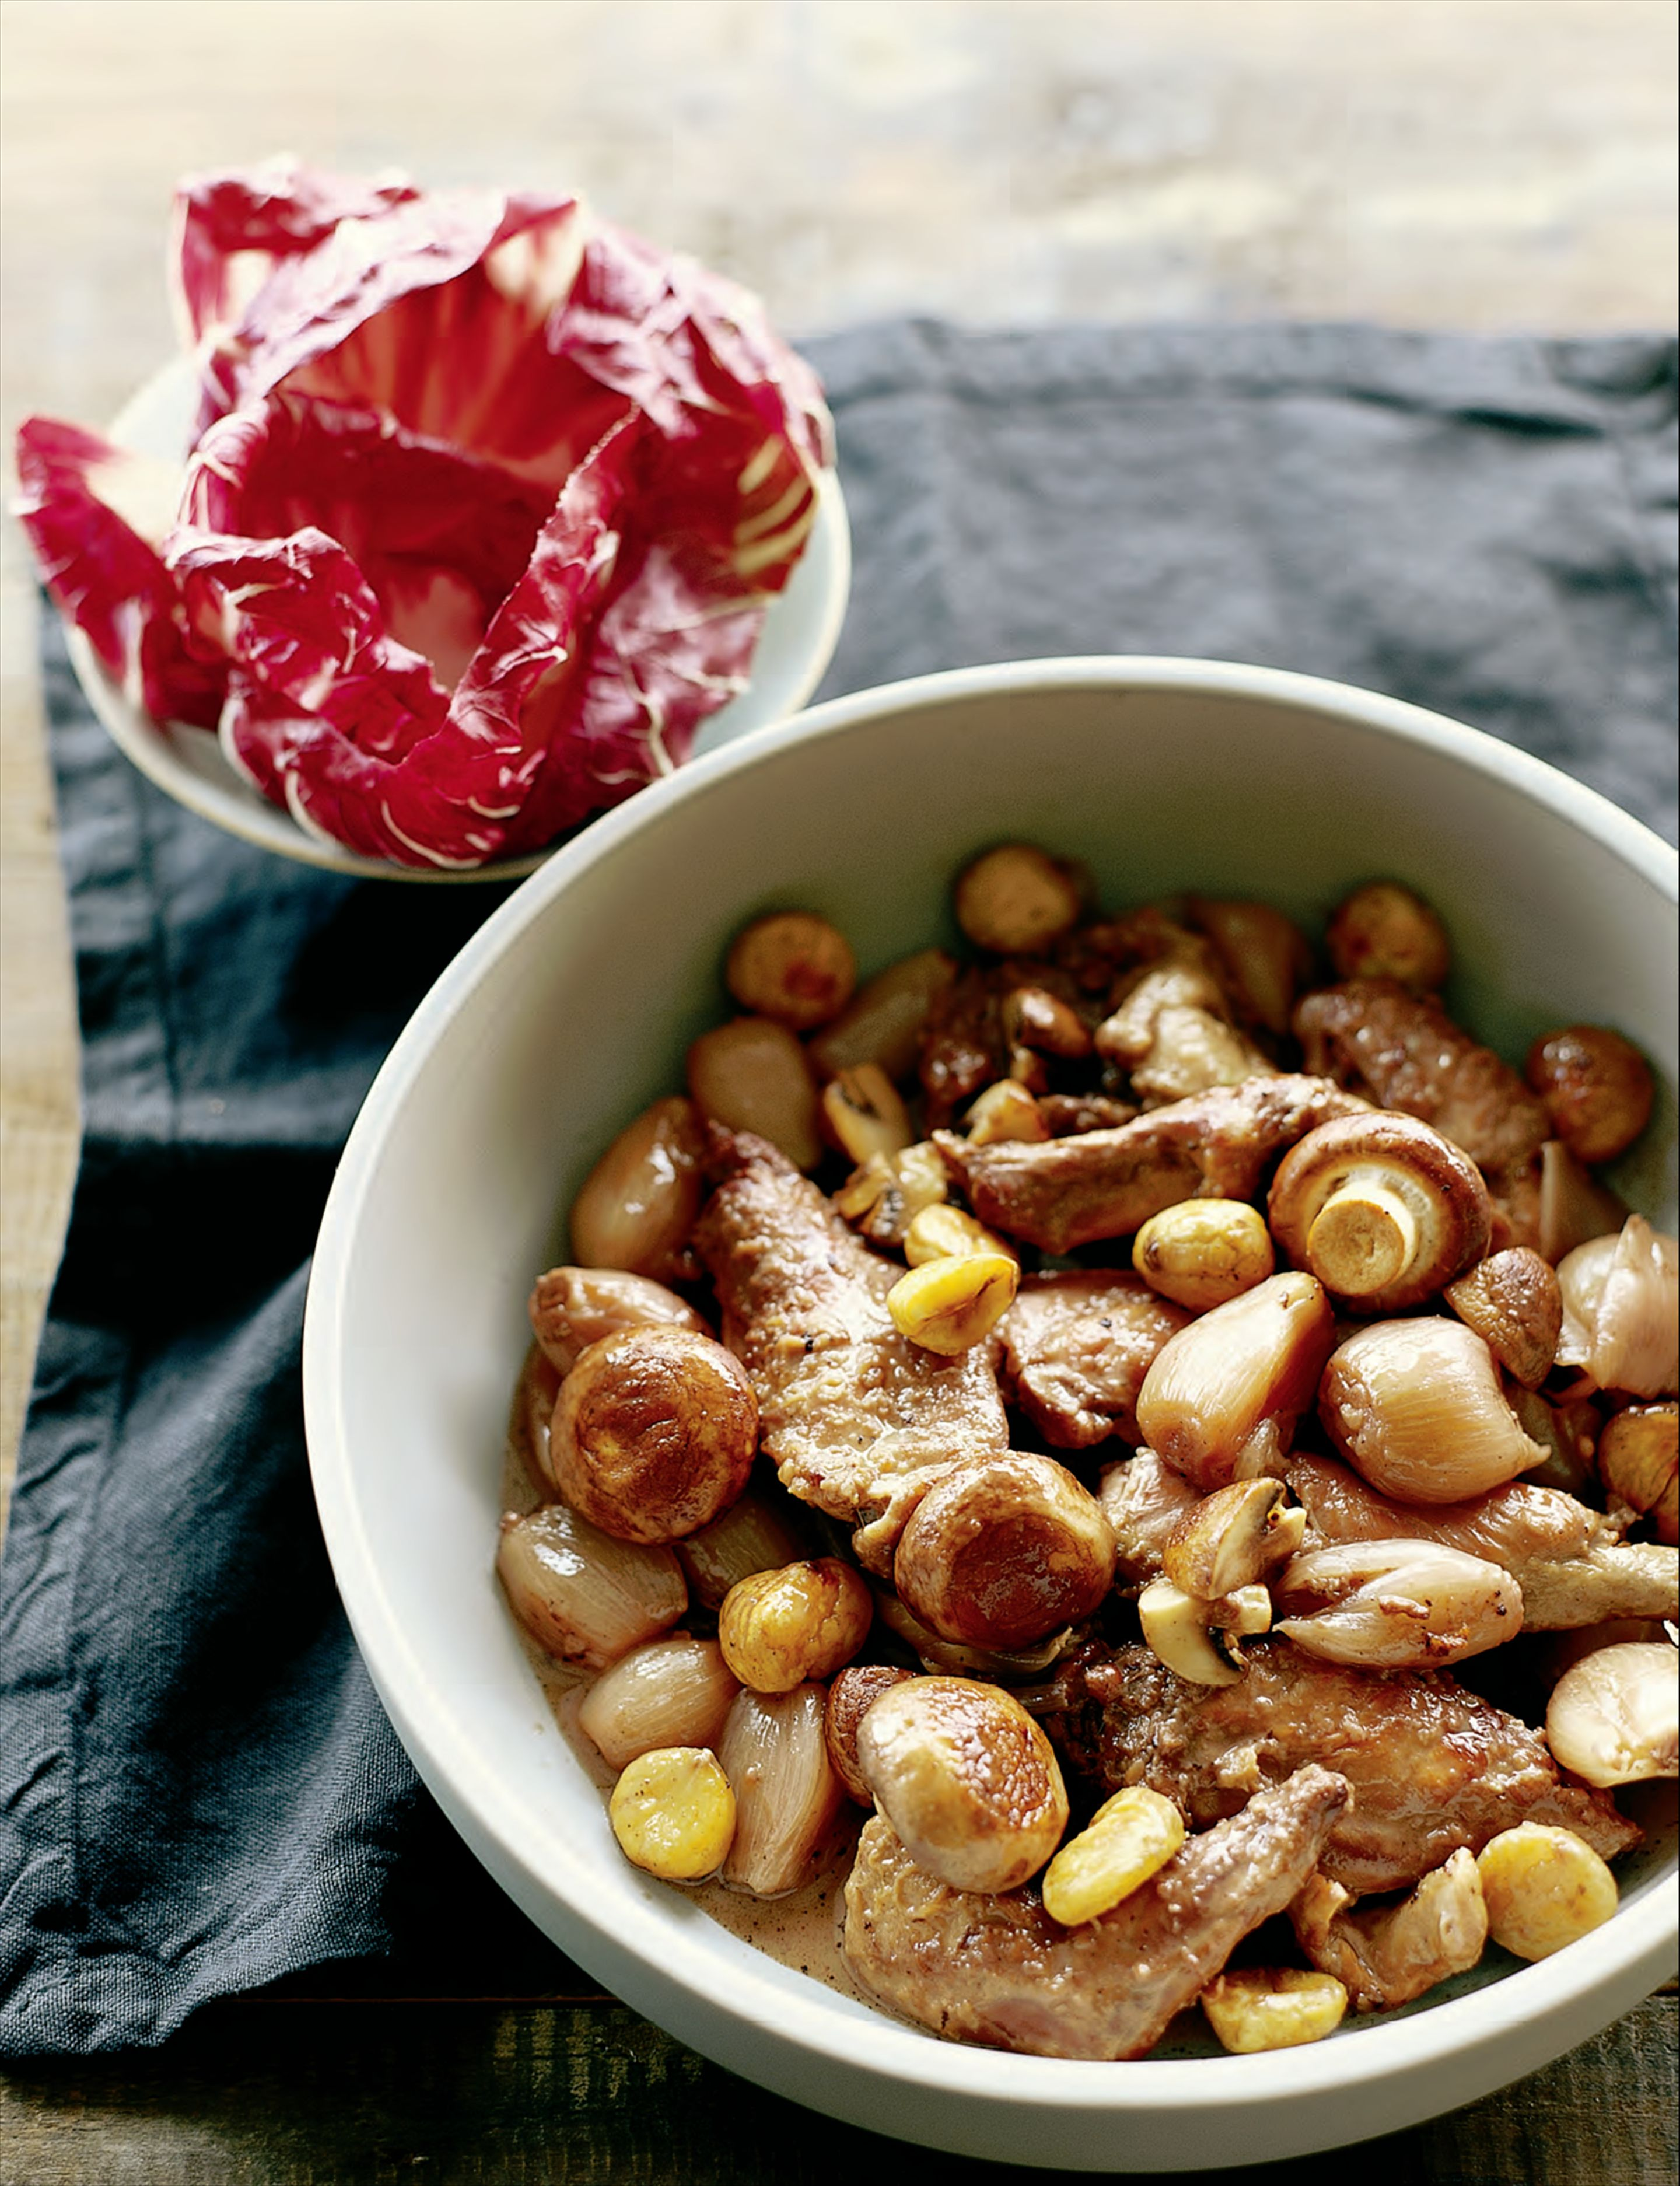 Braised rabbit with mushrooms, chestnuts and shallots